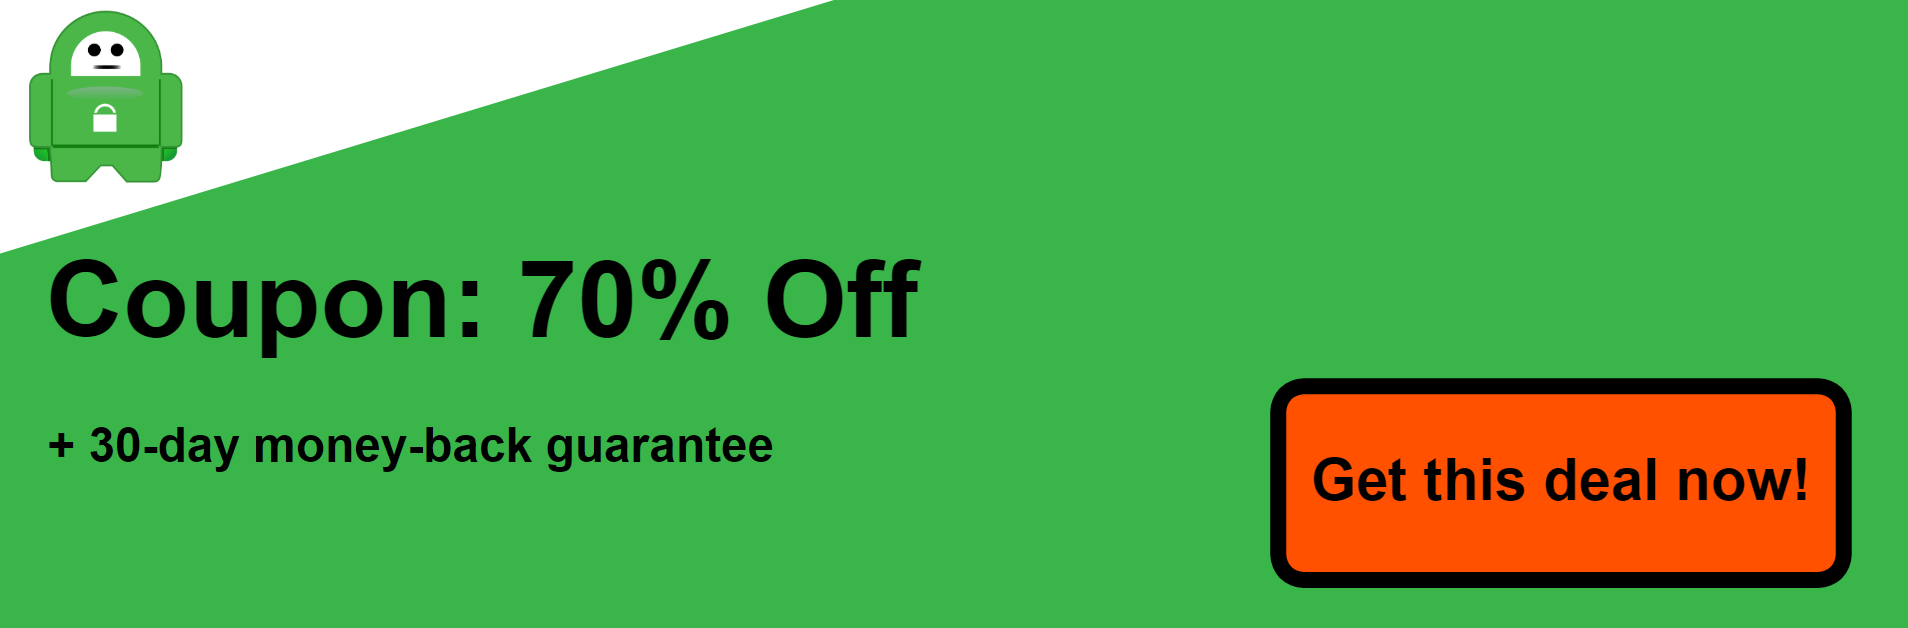 Screenshot of coupon 70% off Private Internet Access